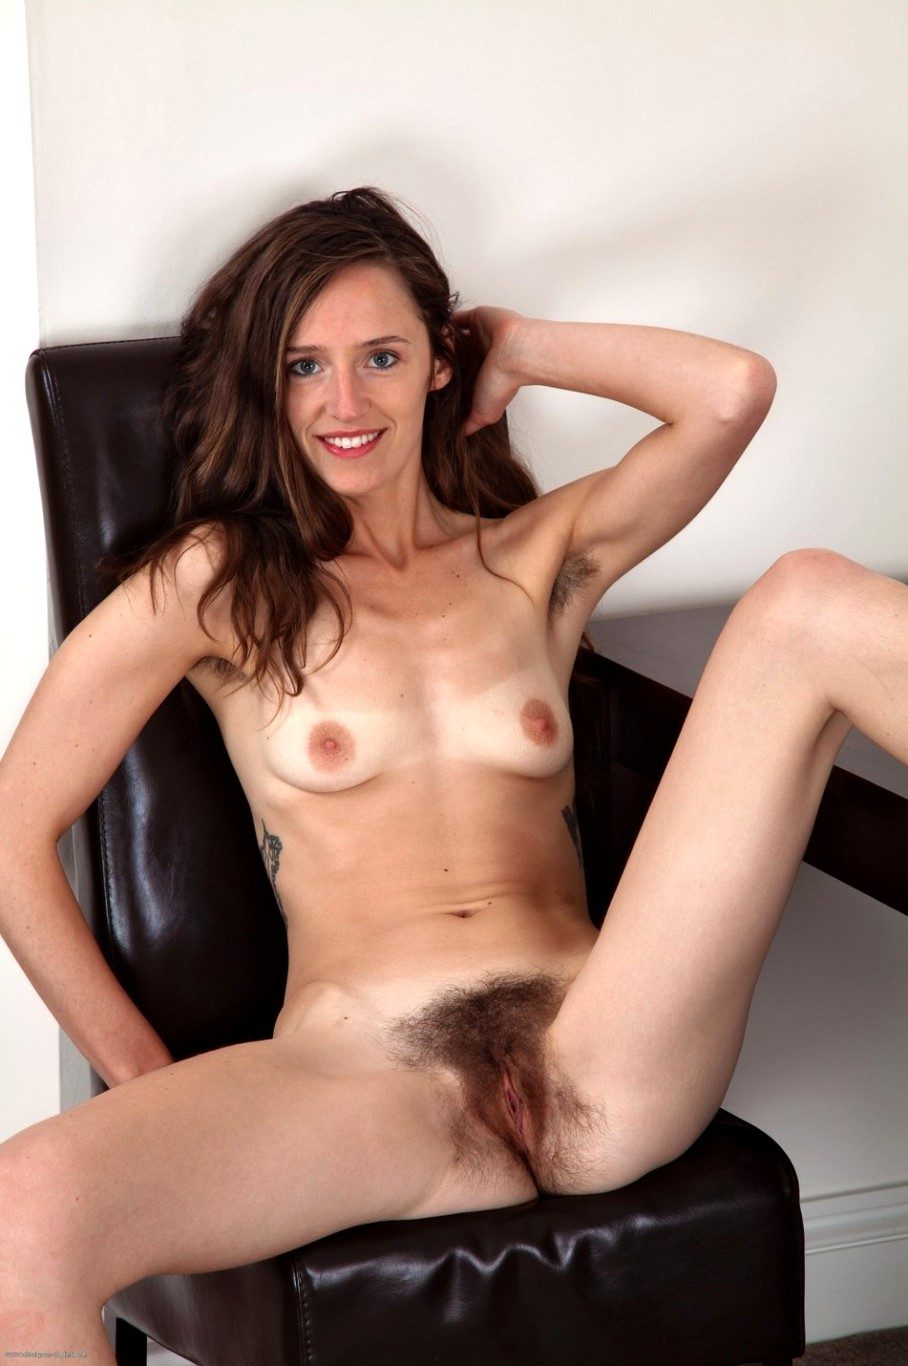 Pictures Of Hairy Nude Women